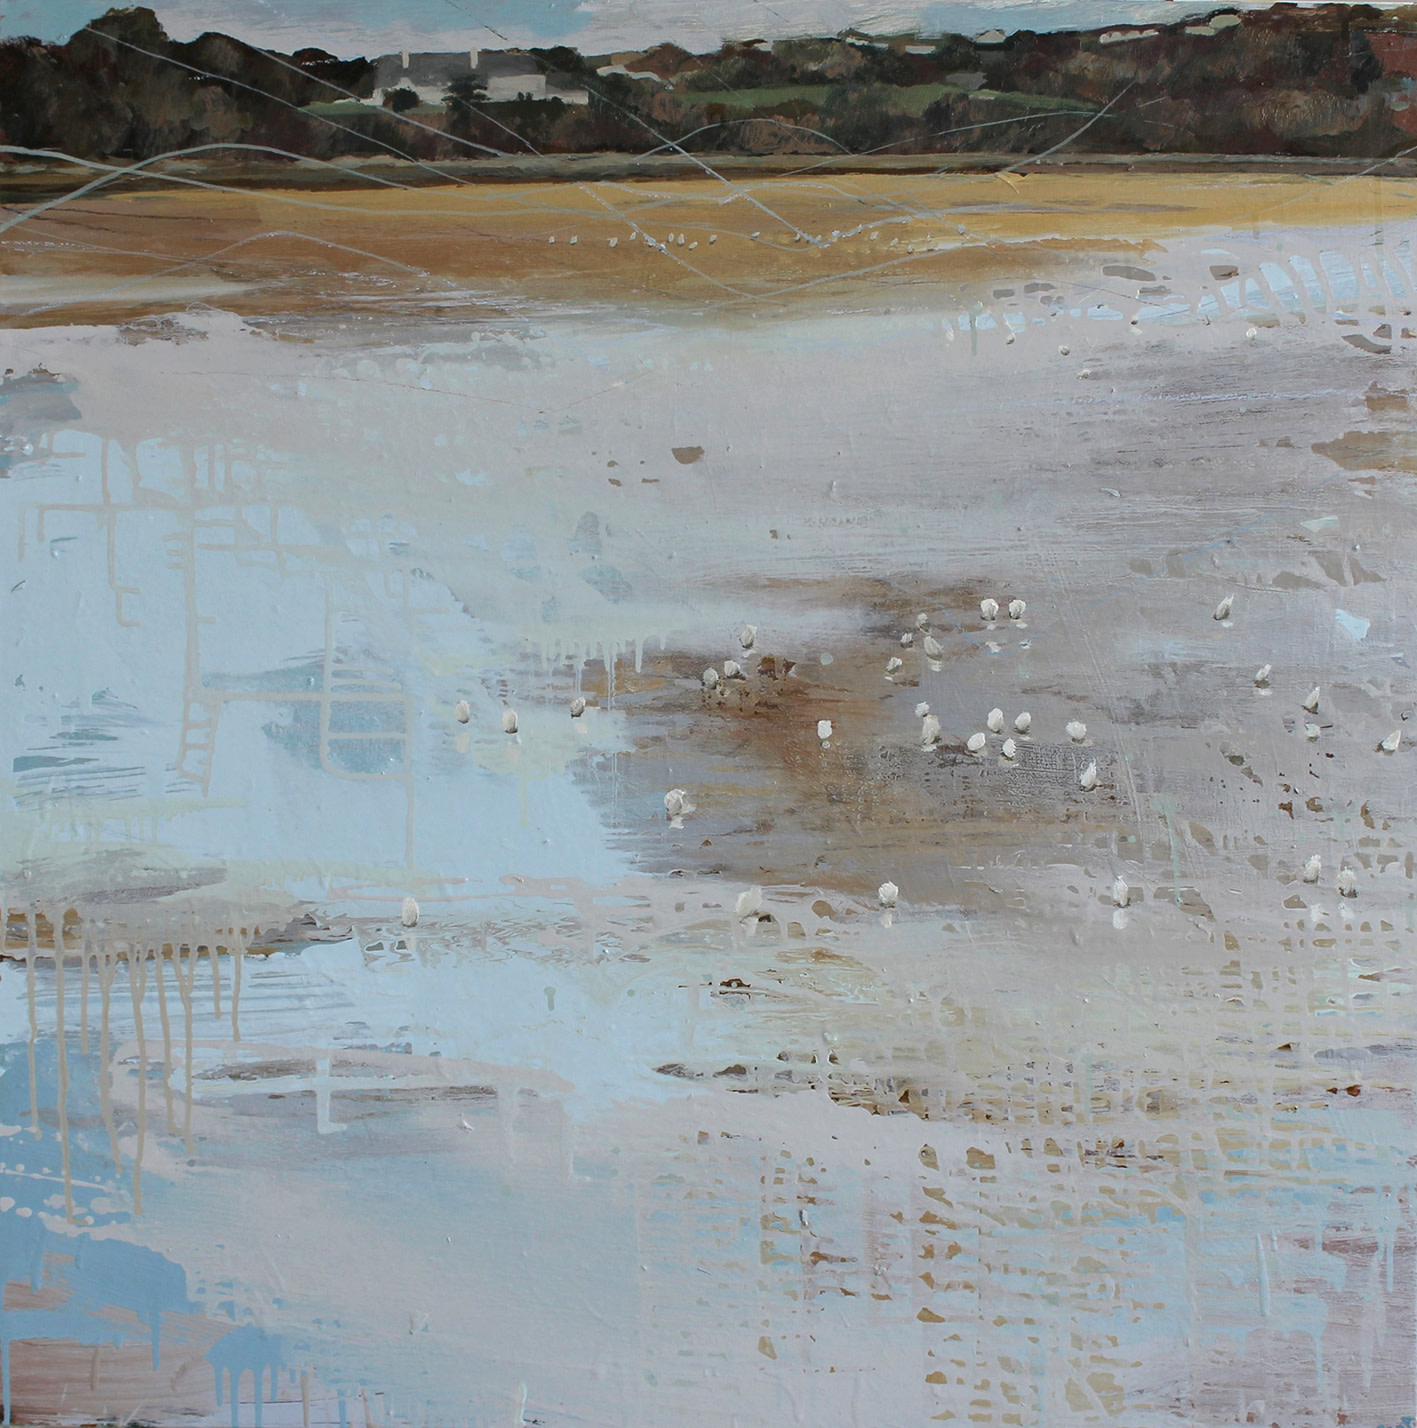 "<span class=""link fancybox-details-link""><a href=""/artists/159-sara-dudman-rwa/works/7043-sara-dudman-rwa-herring-gulls-hayle-estuary-2-2020/"">View Detail Page</a></span><div class=""artist""><strong>Sara Dudman RWA</strong></div> <div class=""title""><em>Herring Gulls (Hayle Estuary) 2</em>, 2020</div> <div class=""medium"">Oil on Canvas</div> <div class=""dimensions"">76cms x 76cms (unframed)<br /> 82cms x 82cms tray framed</div><div class=""price"">£1,500.00</div><div class=""copyright_line"">Own Art £150 x 10 months, 0% APR</div>"